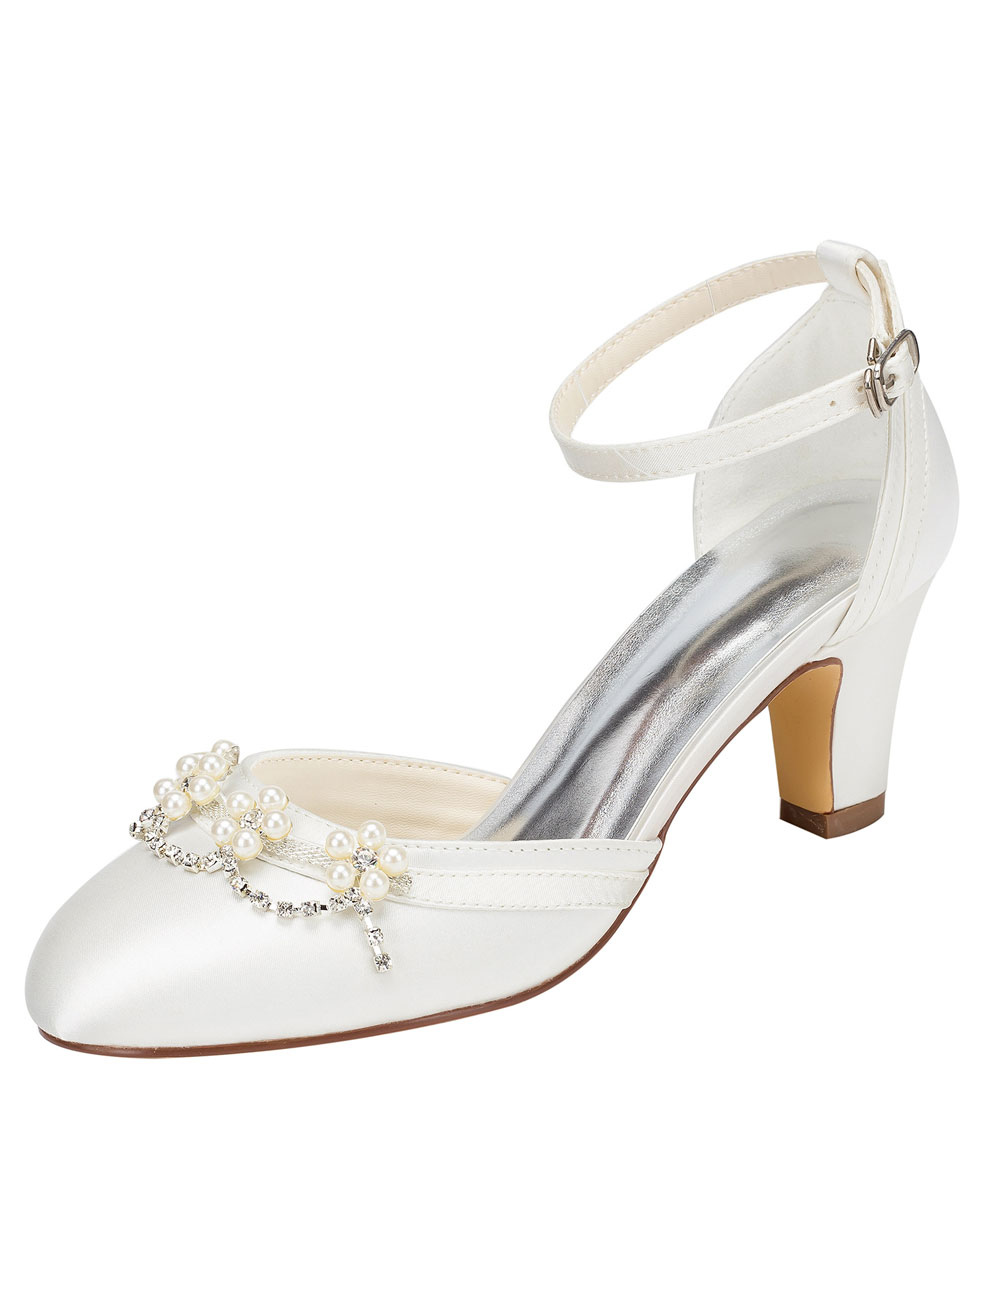 Buy Ivory Bridal Shoes Chunky Heel Round Toe Ankle Strap Pearl Crystal Wedding Shoes for $55.24 in Milanoo store